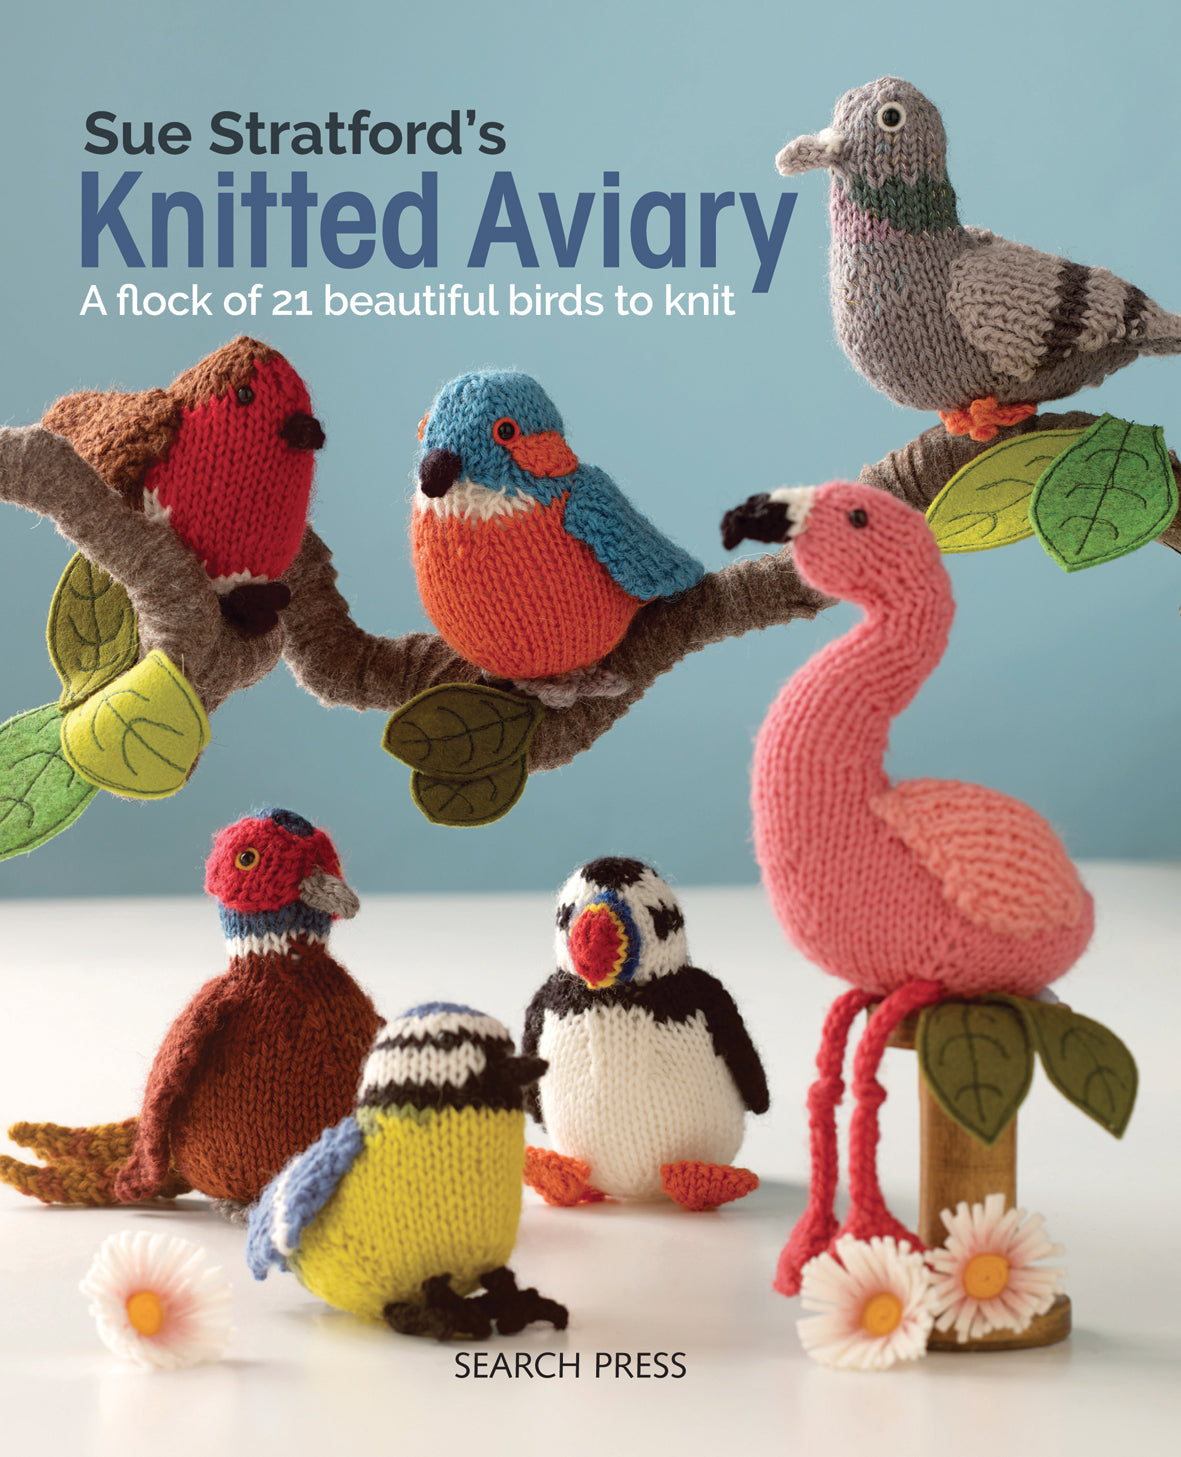 The Knitted Aviary